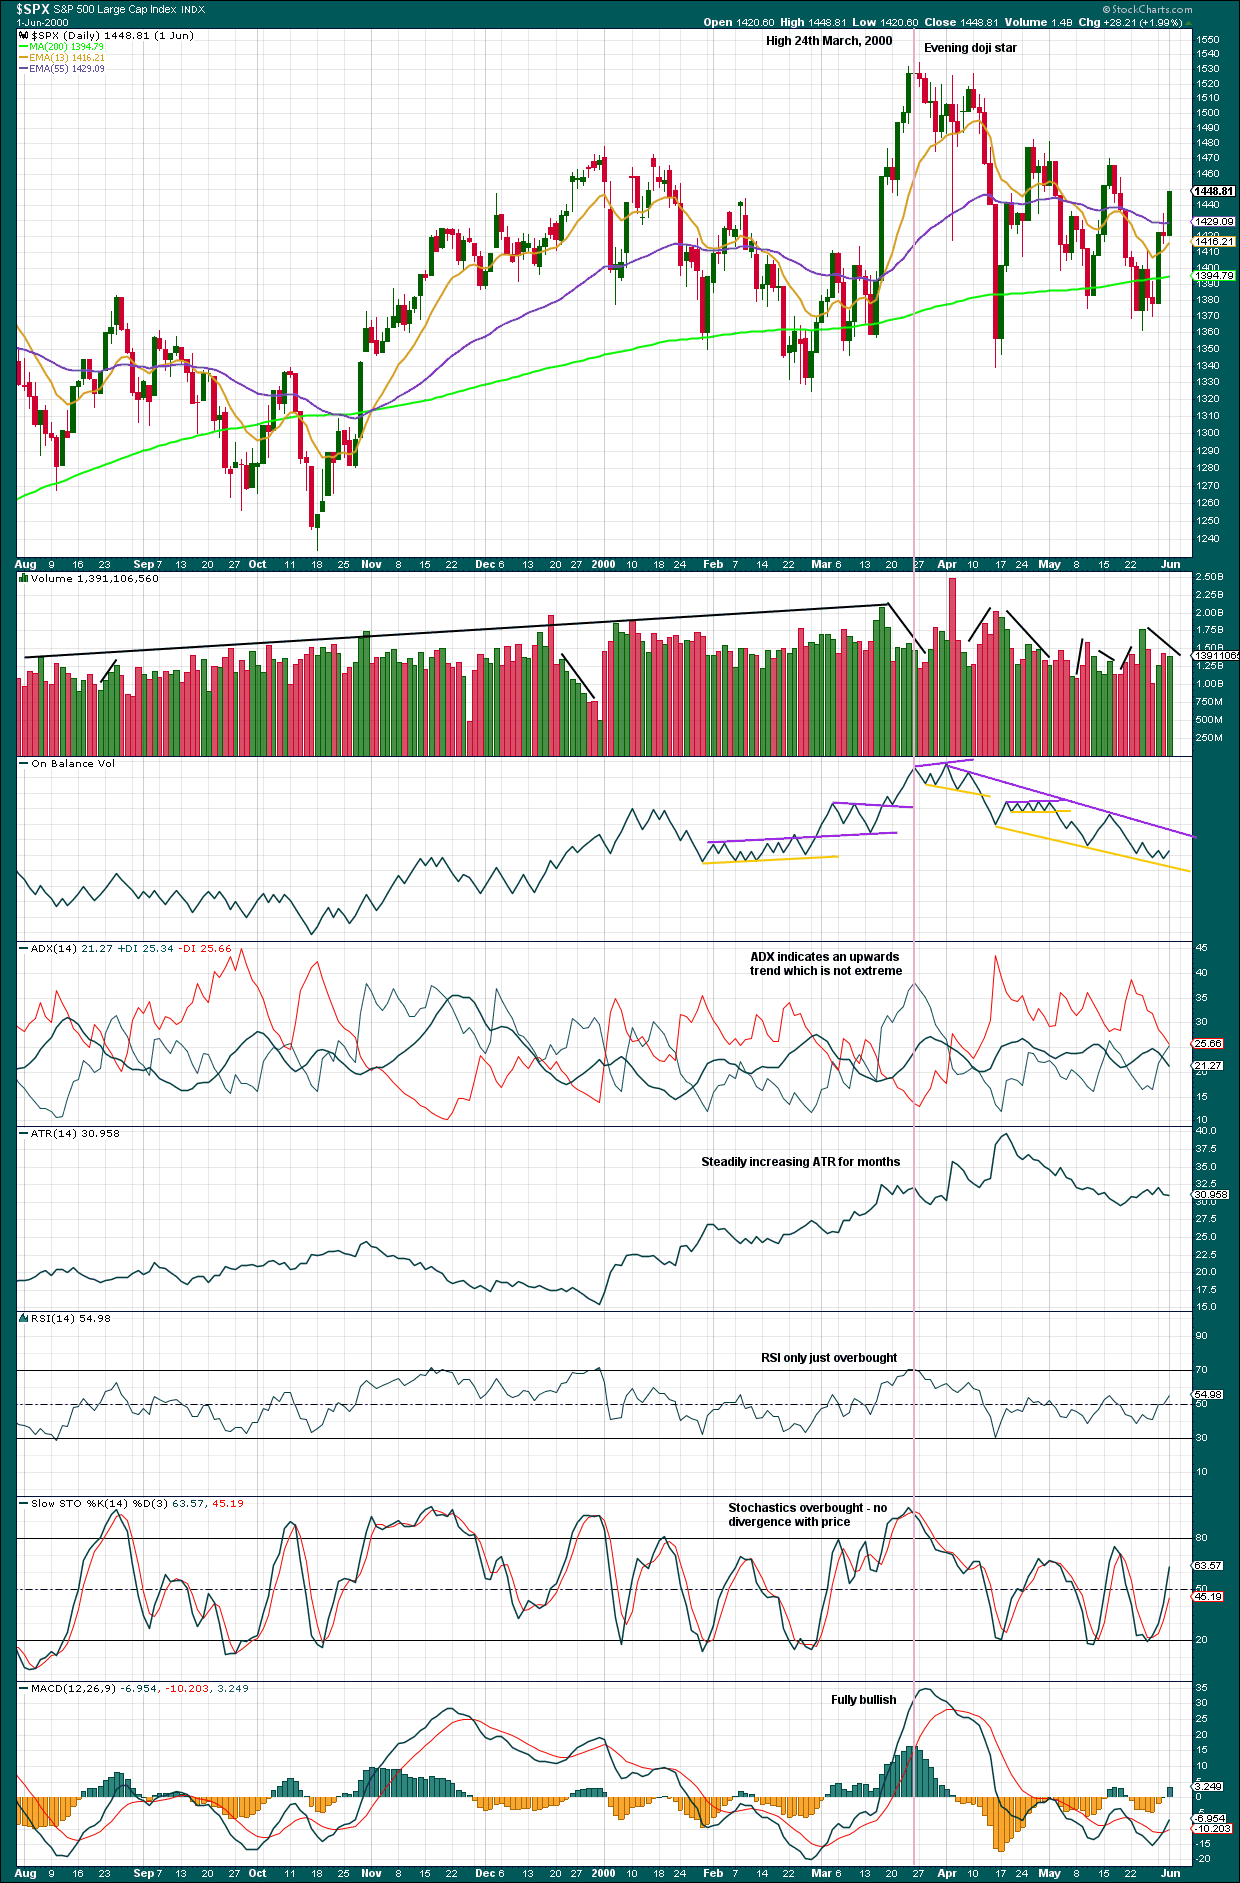 S&P 500 Daily 2000